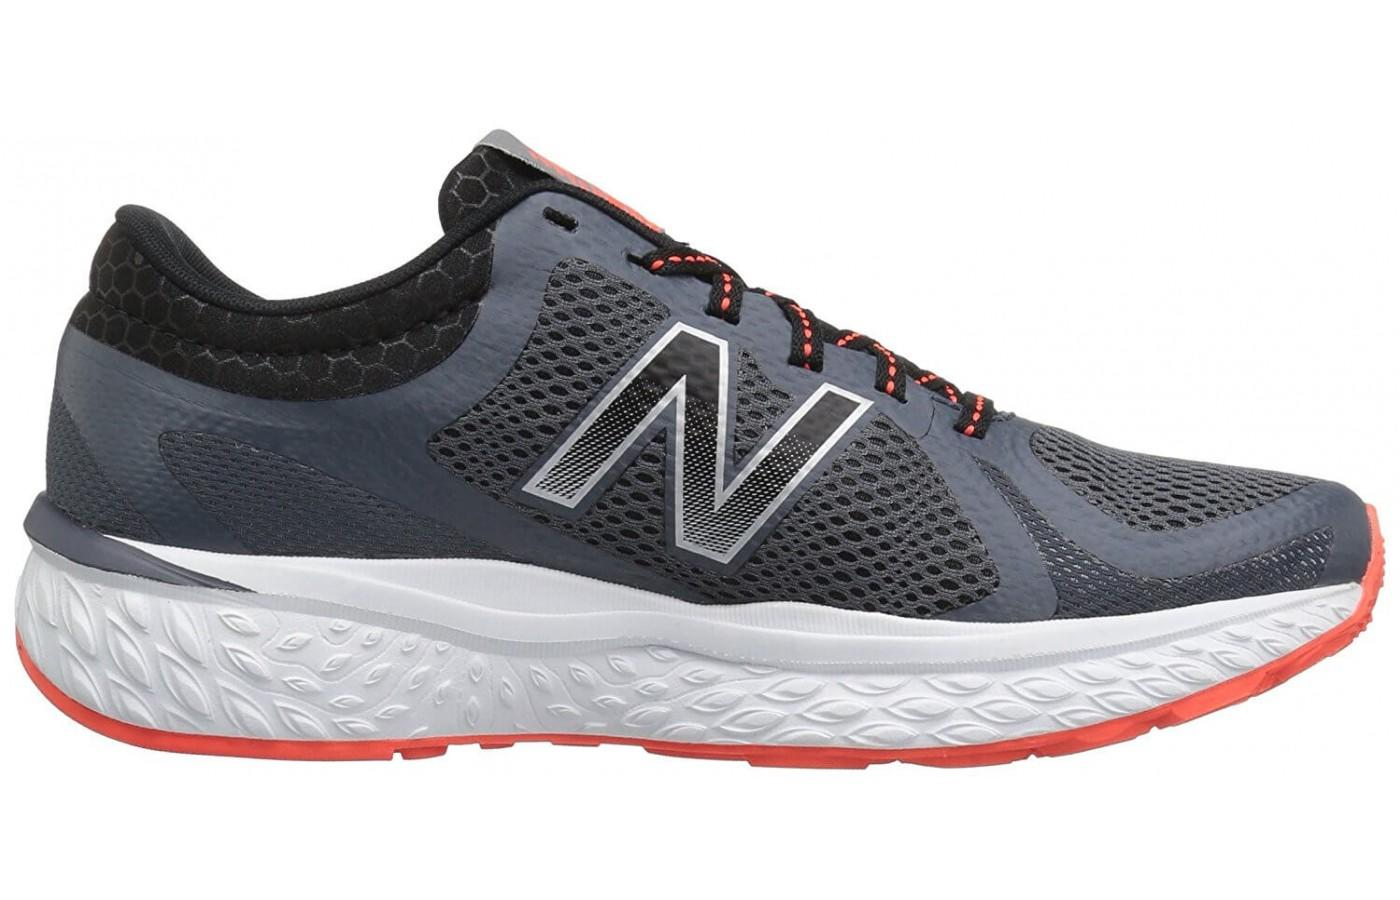 The New Balance 720 V4 has a 10mm drop